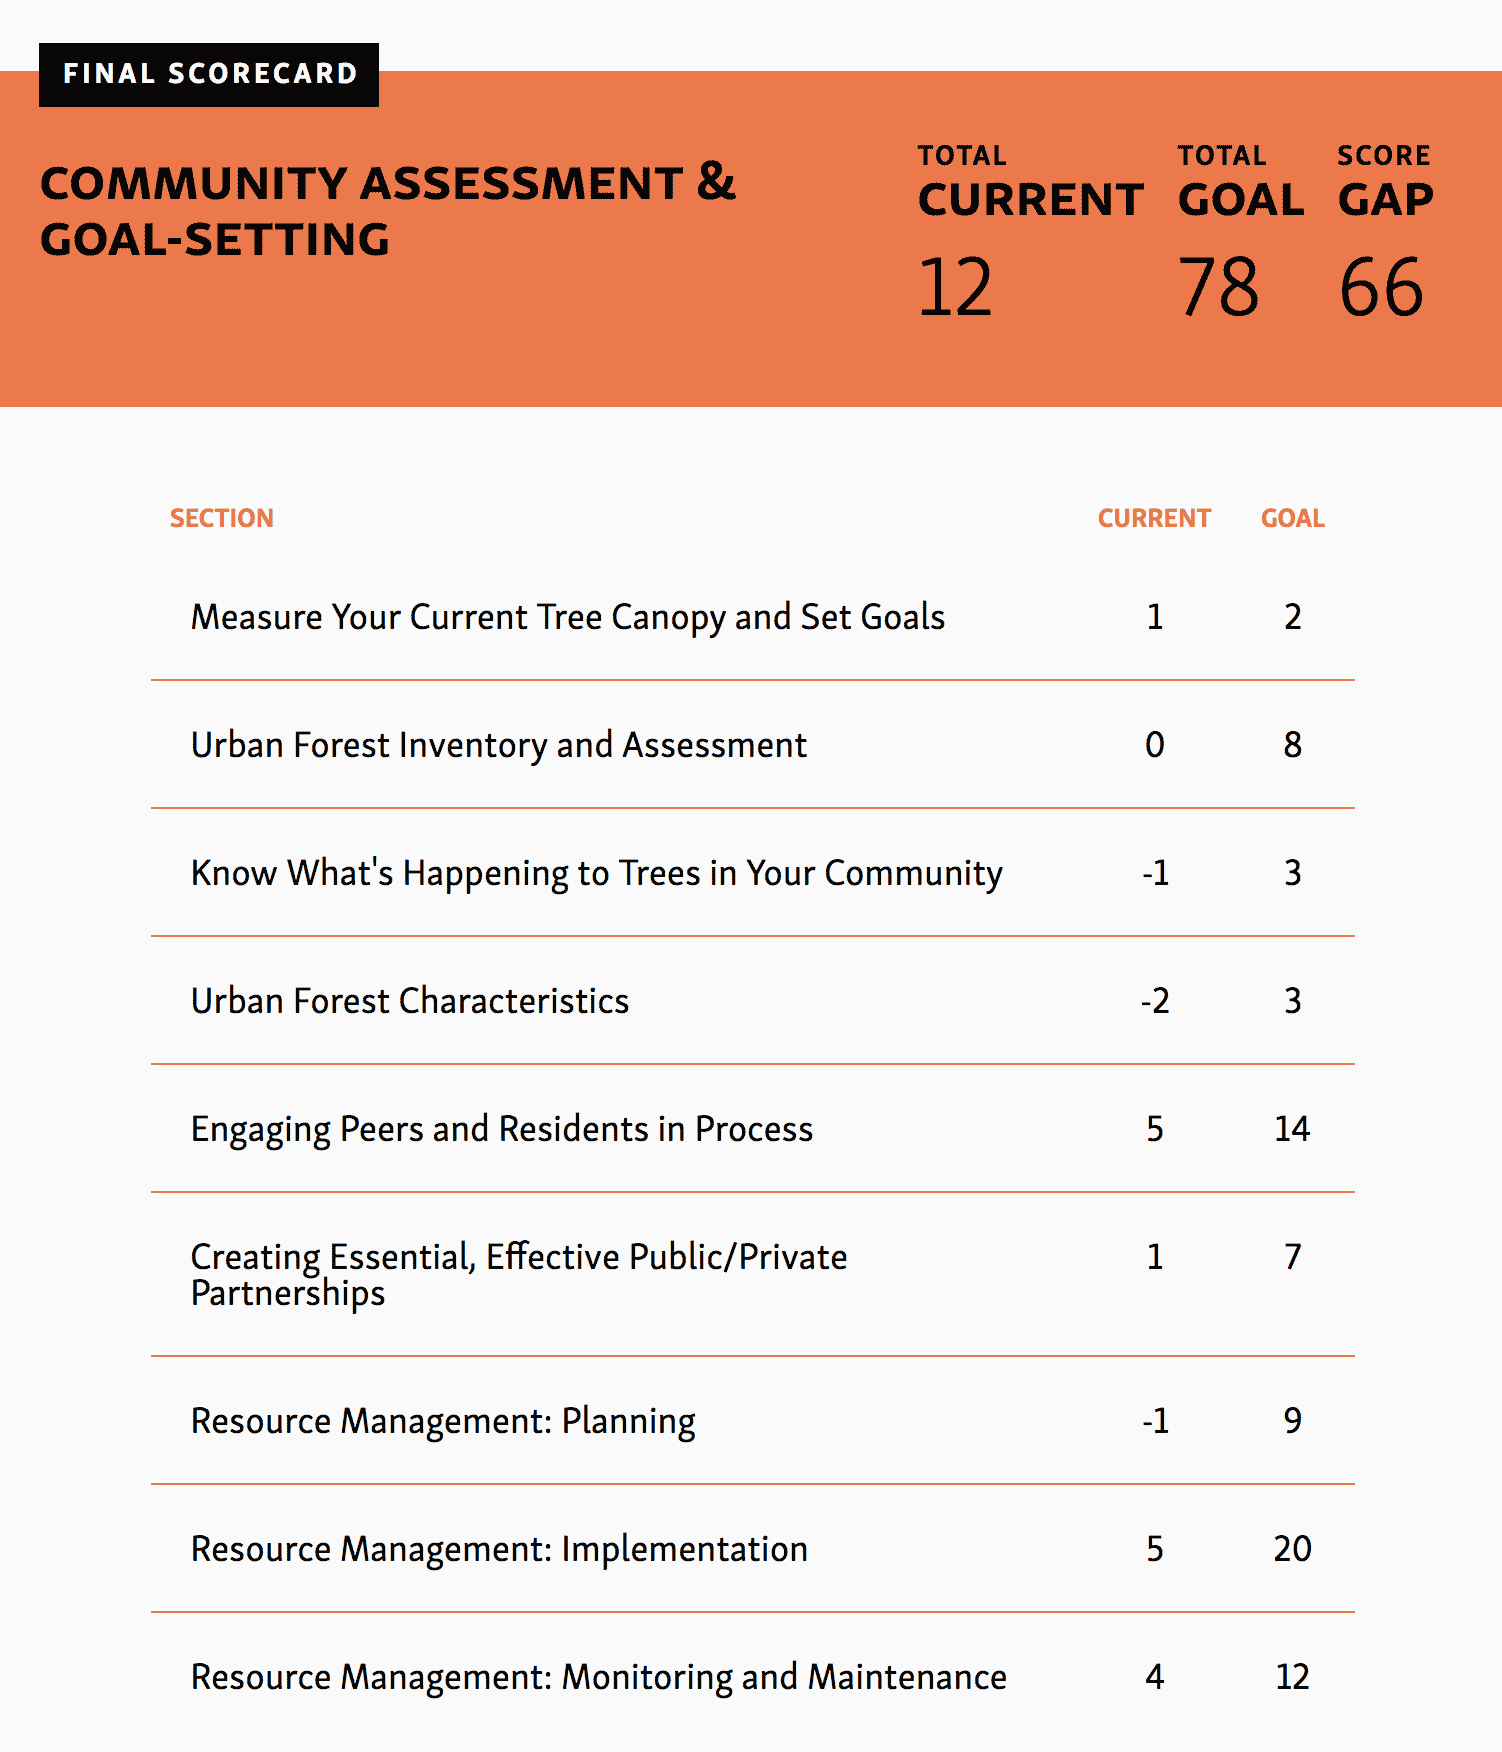 Community Assessment & Goal-Setting Tool final results and scorecard example